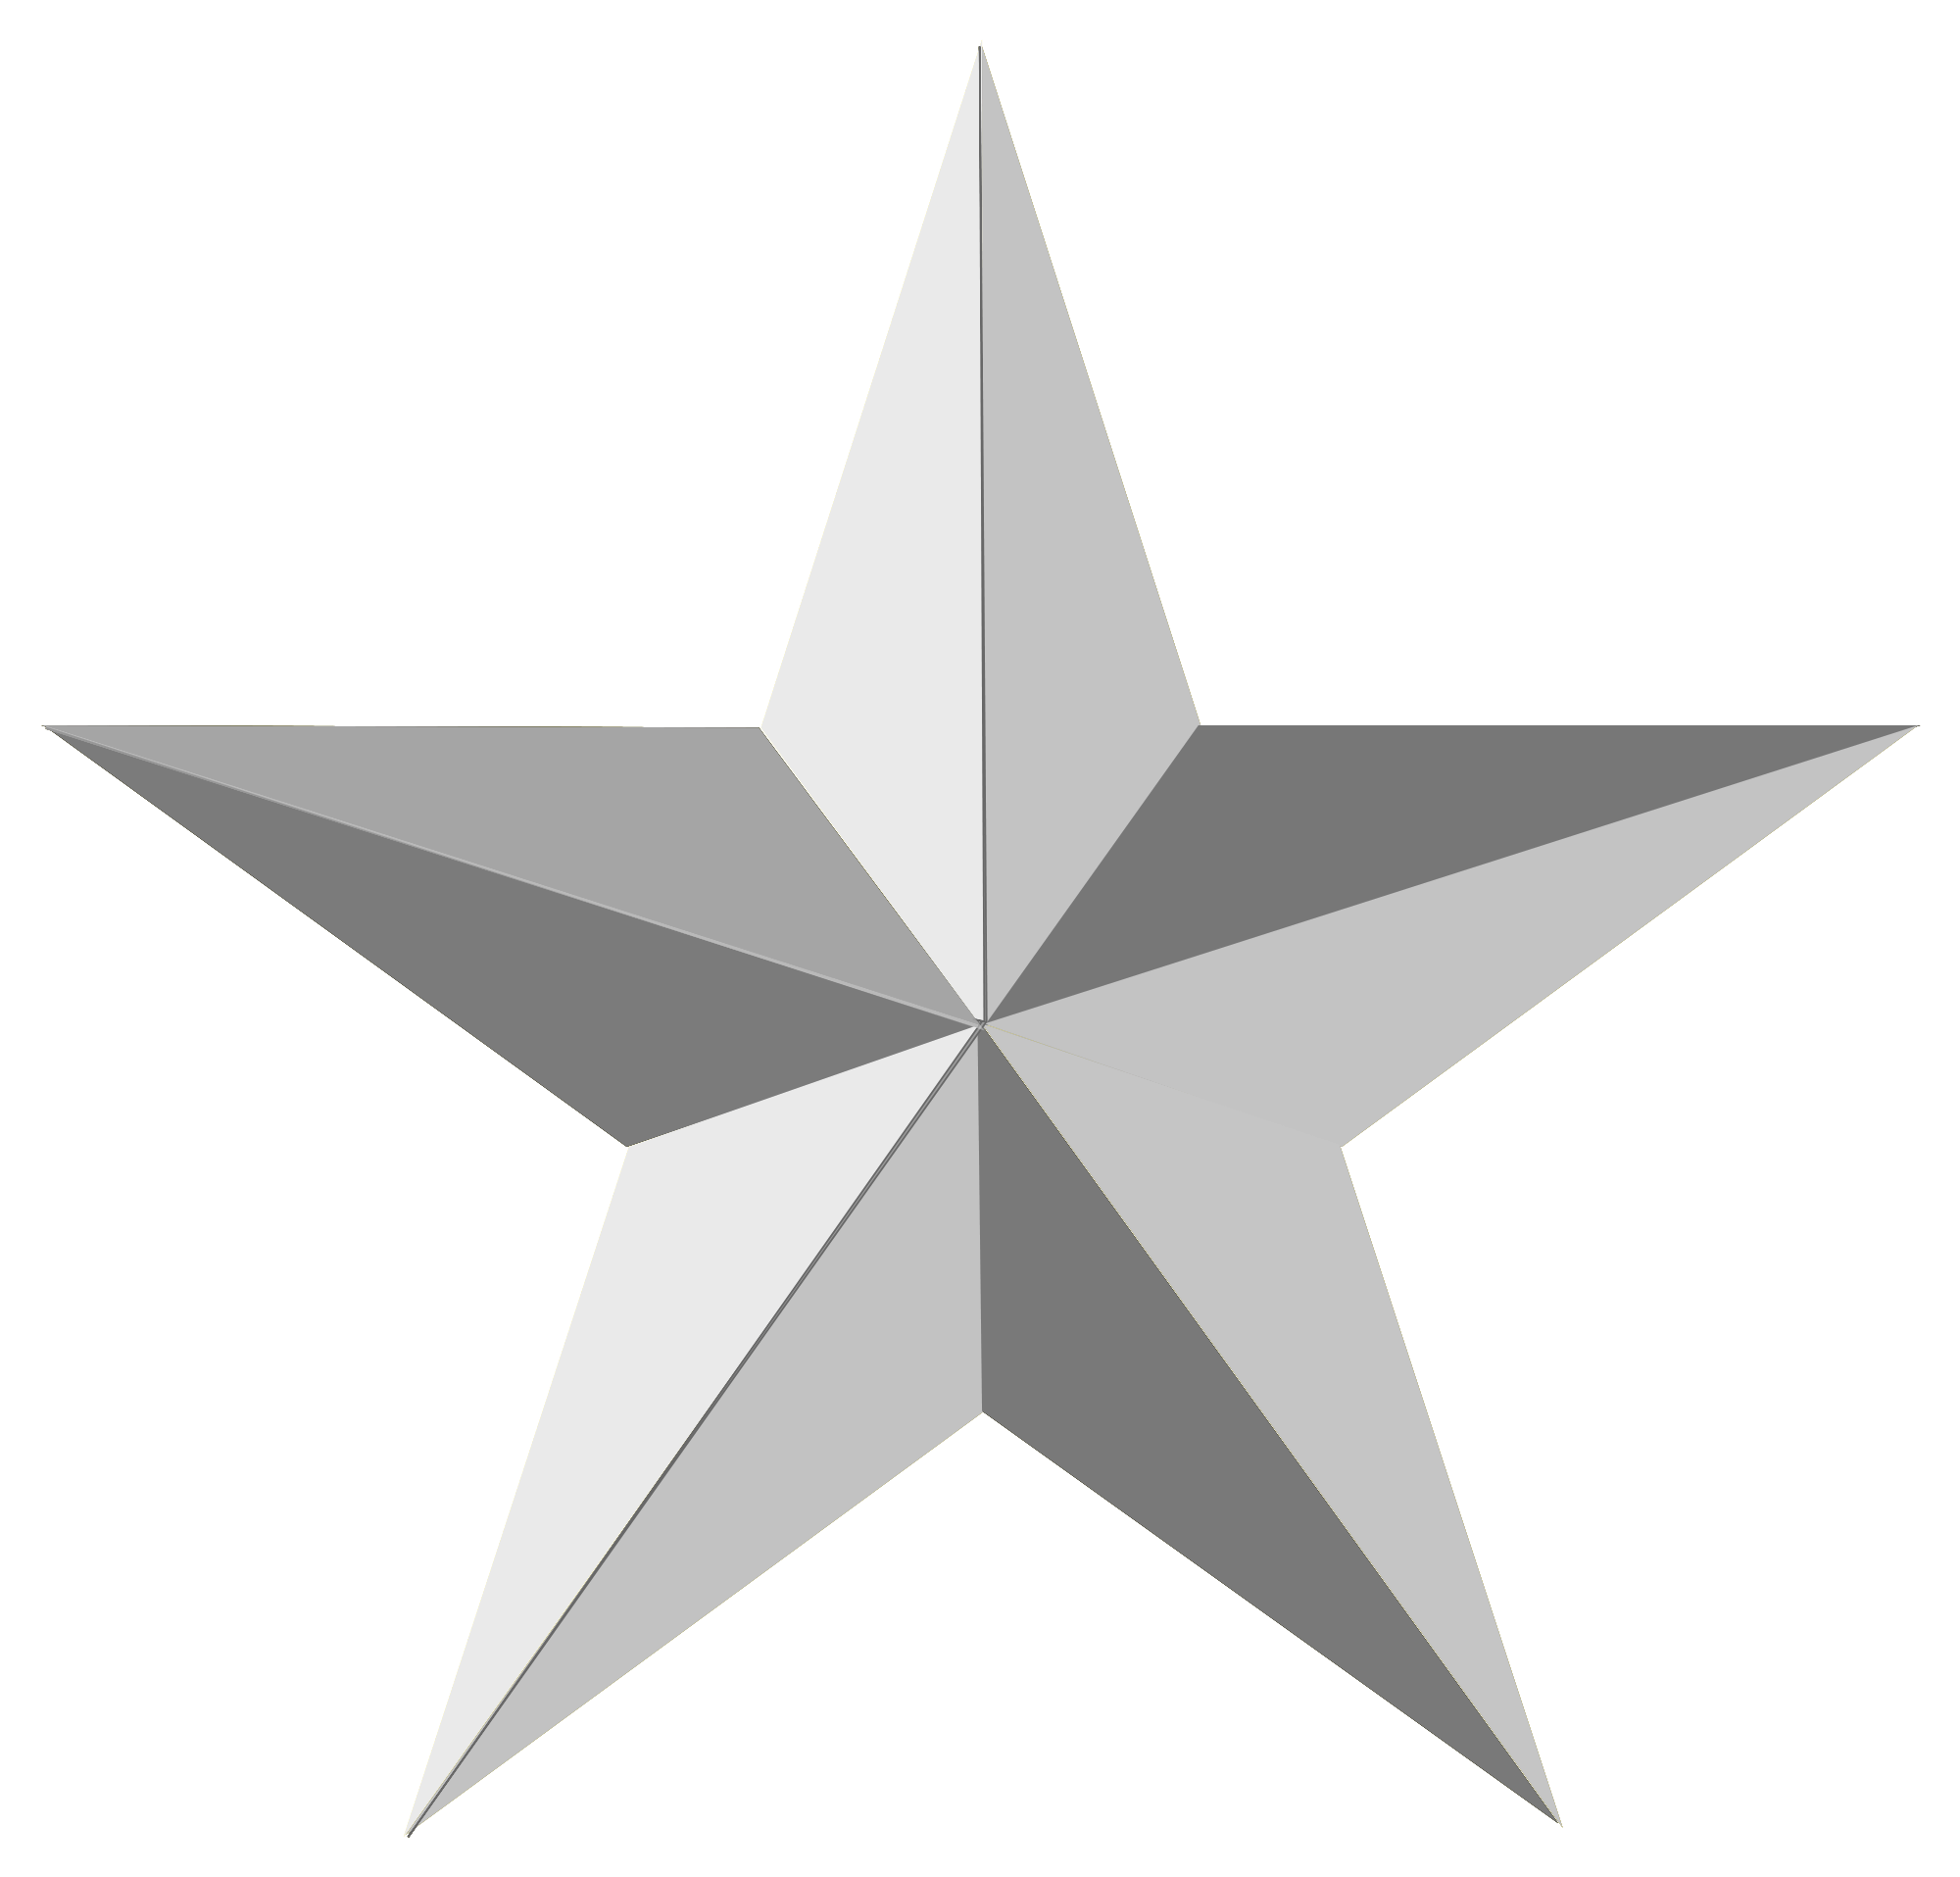 Clipart designs silver. Star isolated stock photo